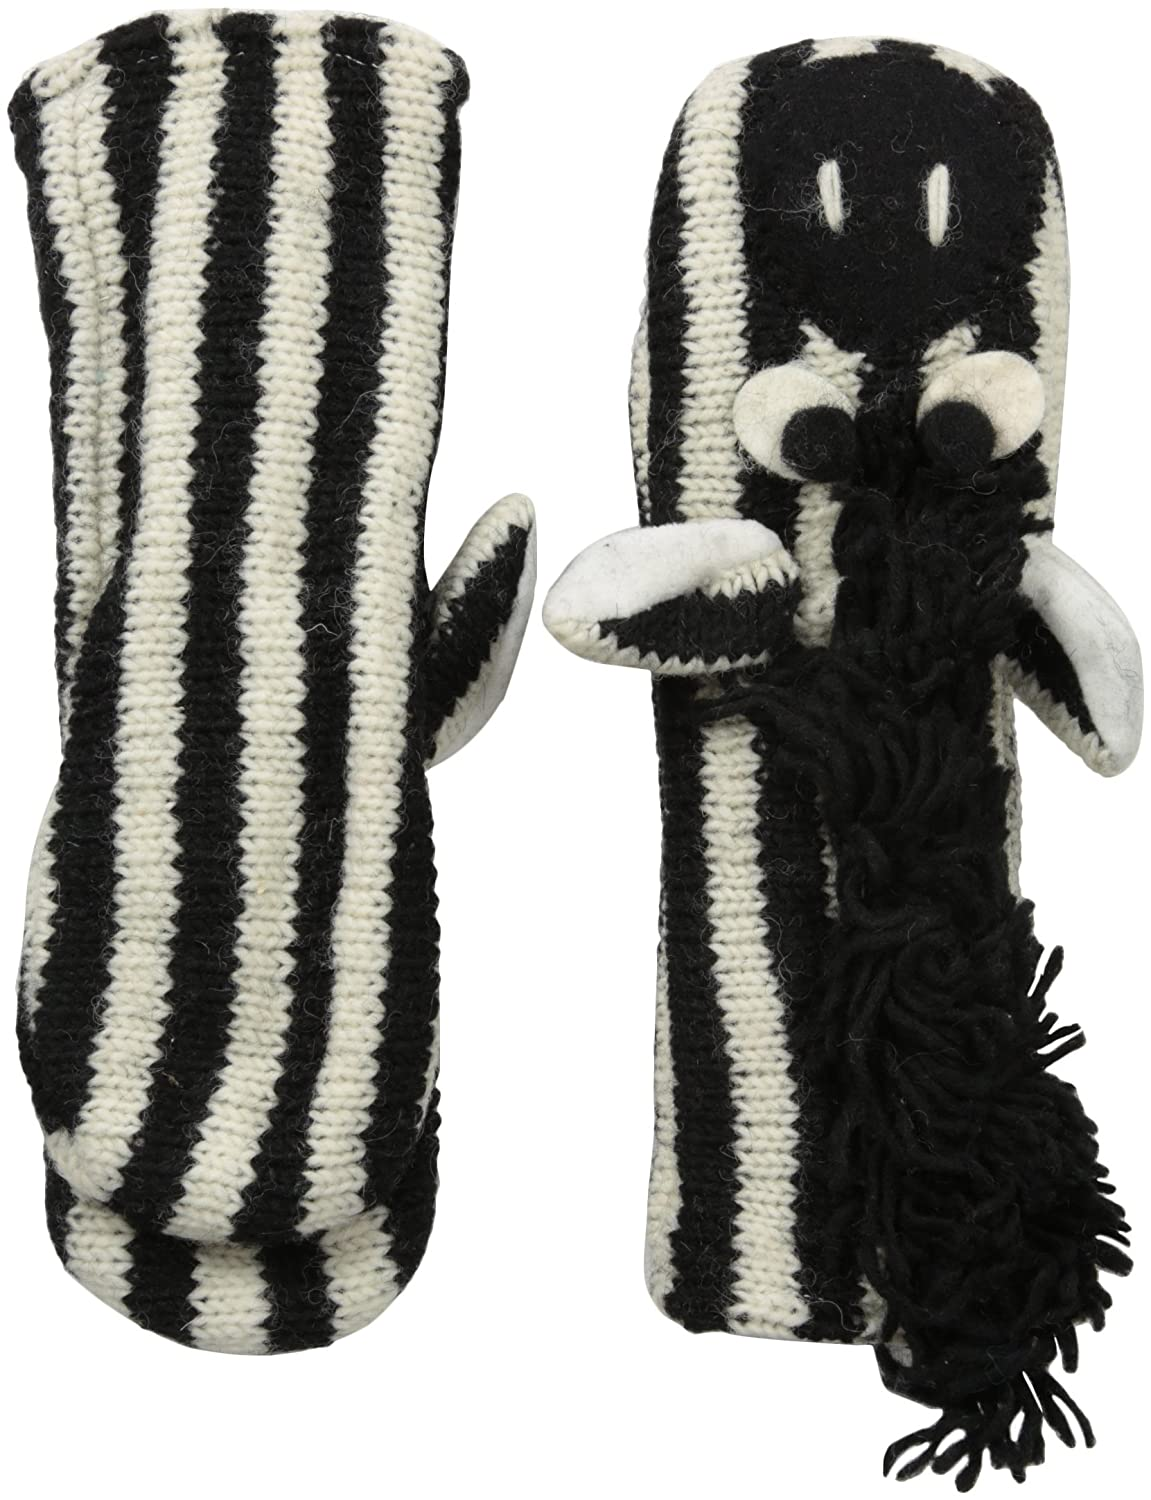 Nirvanna Designs MTZEBRA Zebra Puppet Mittens Black/White 4-11 Years mtzebra-White C